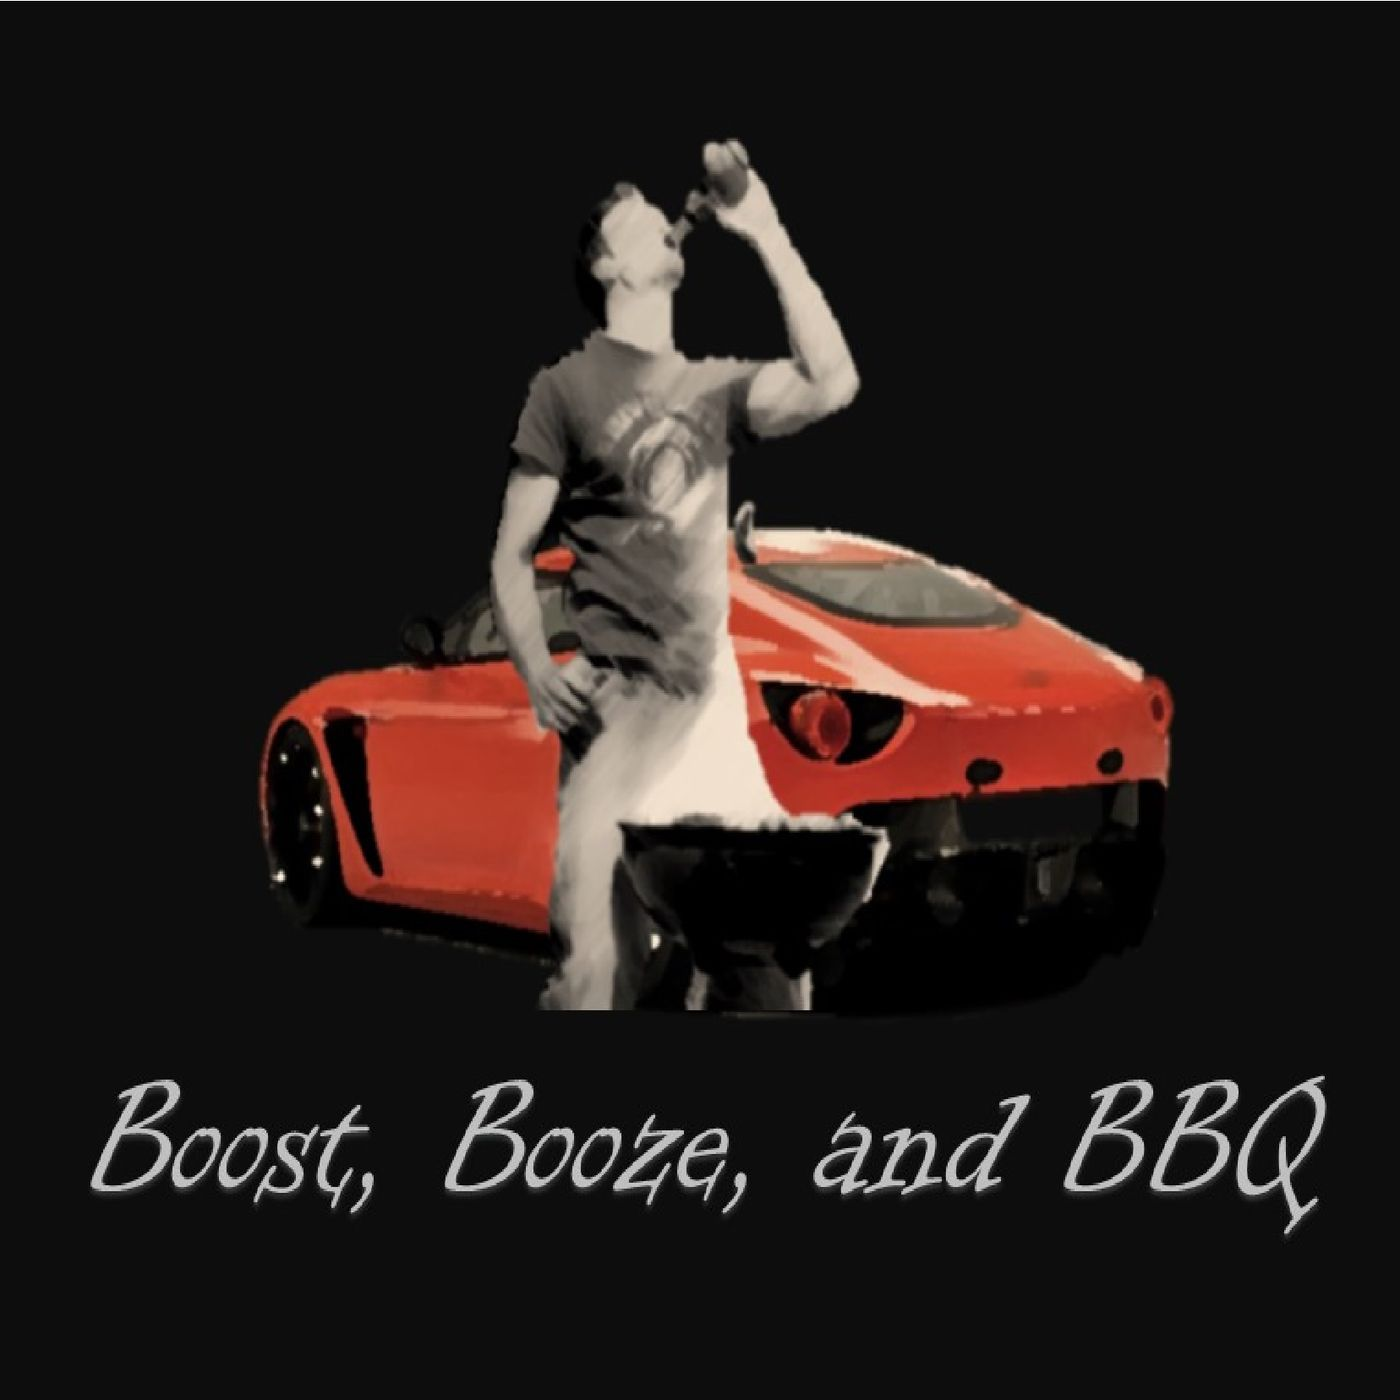 Boost, Booze, and BBQ